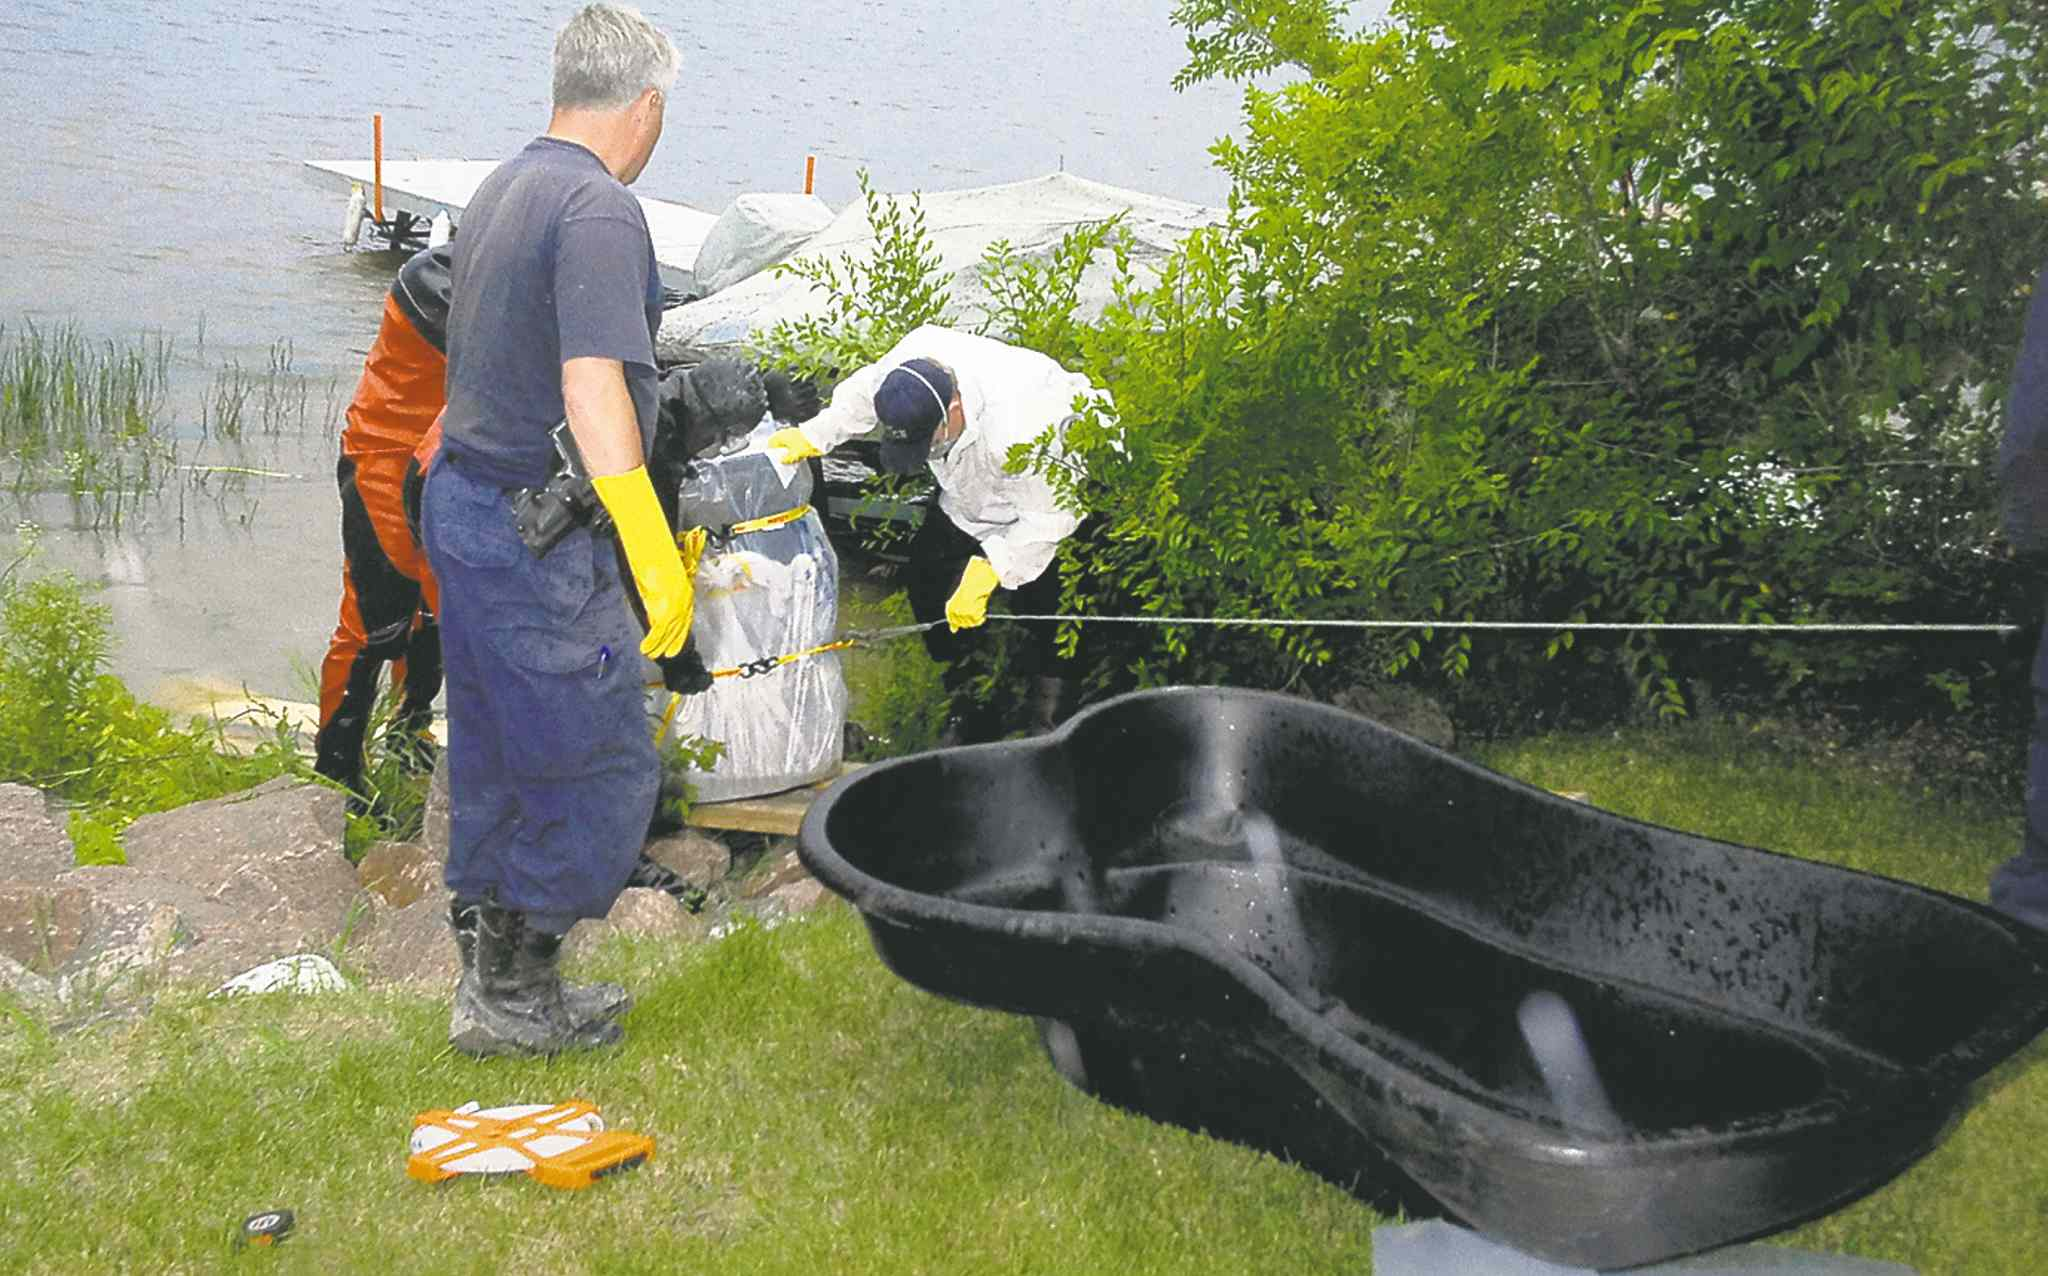 RCMP / Manitoba Justice RCMP divers and forensic officers secure the barrel in which the body of Chad Davis (at right) was found in 2008.